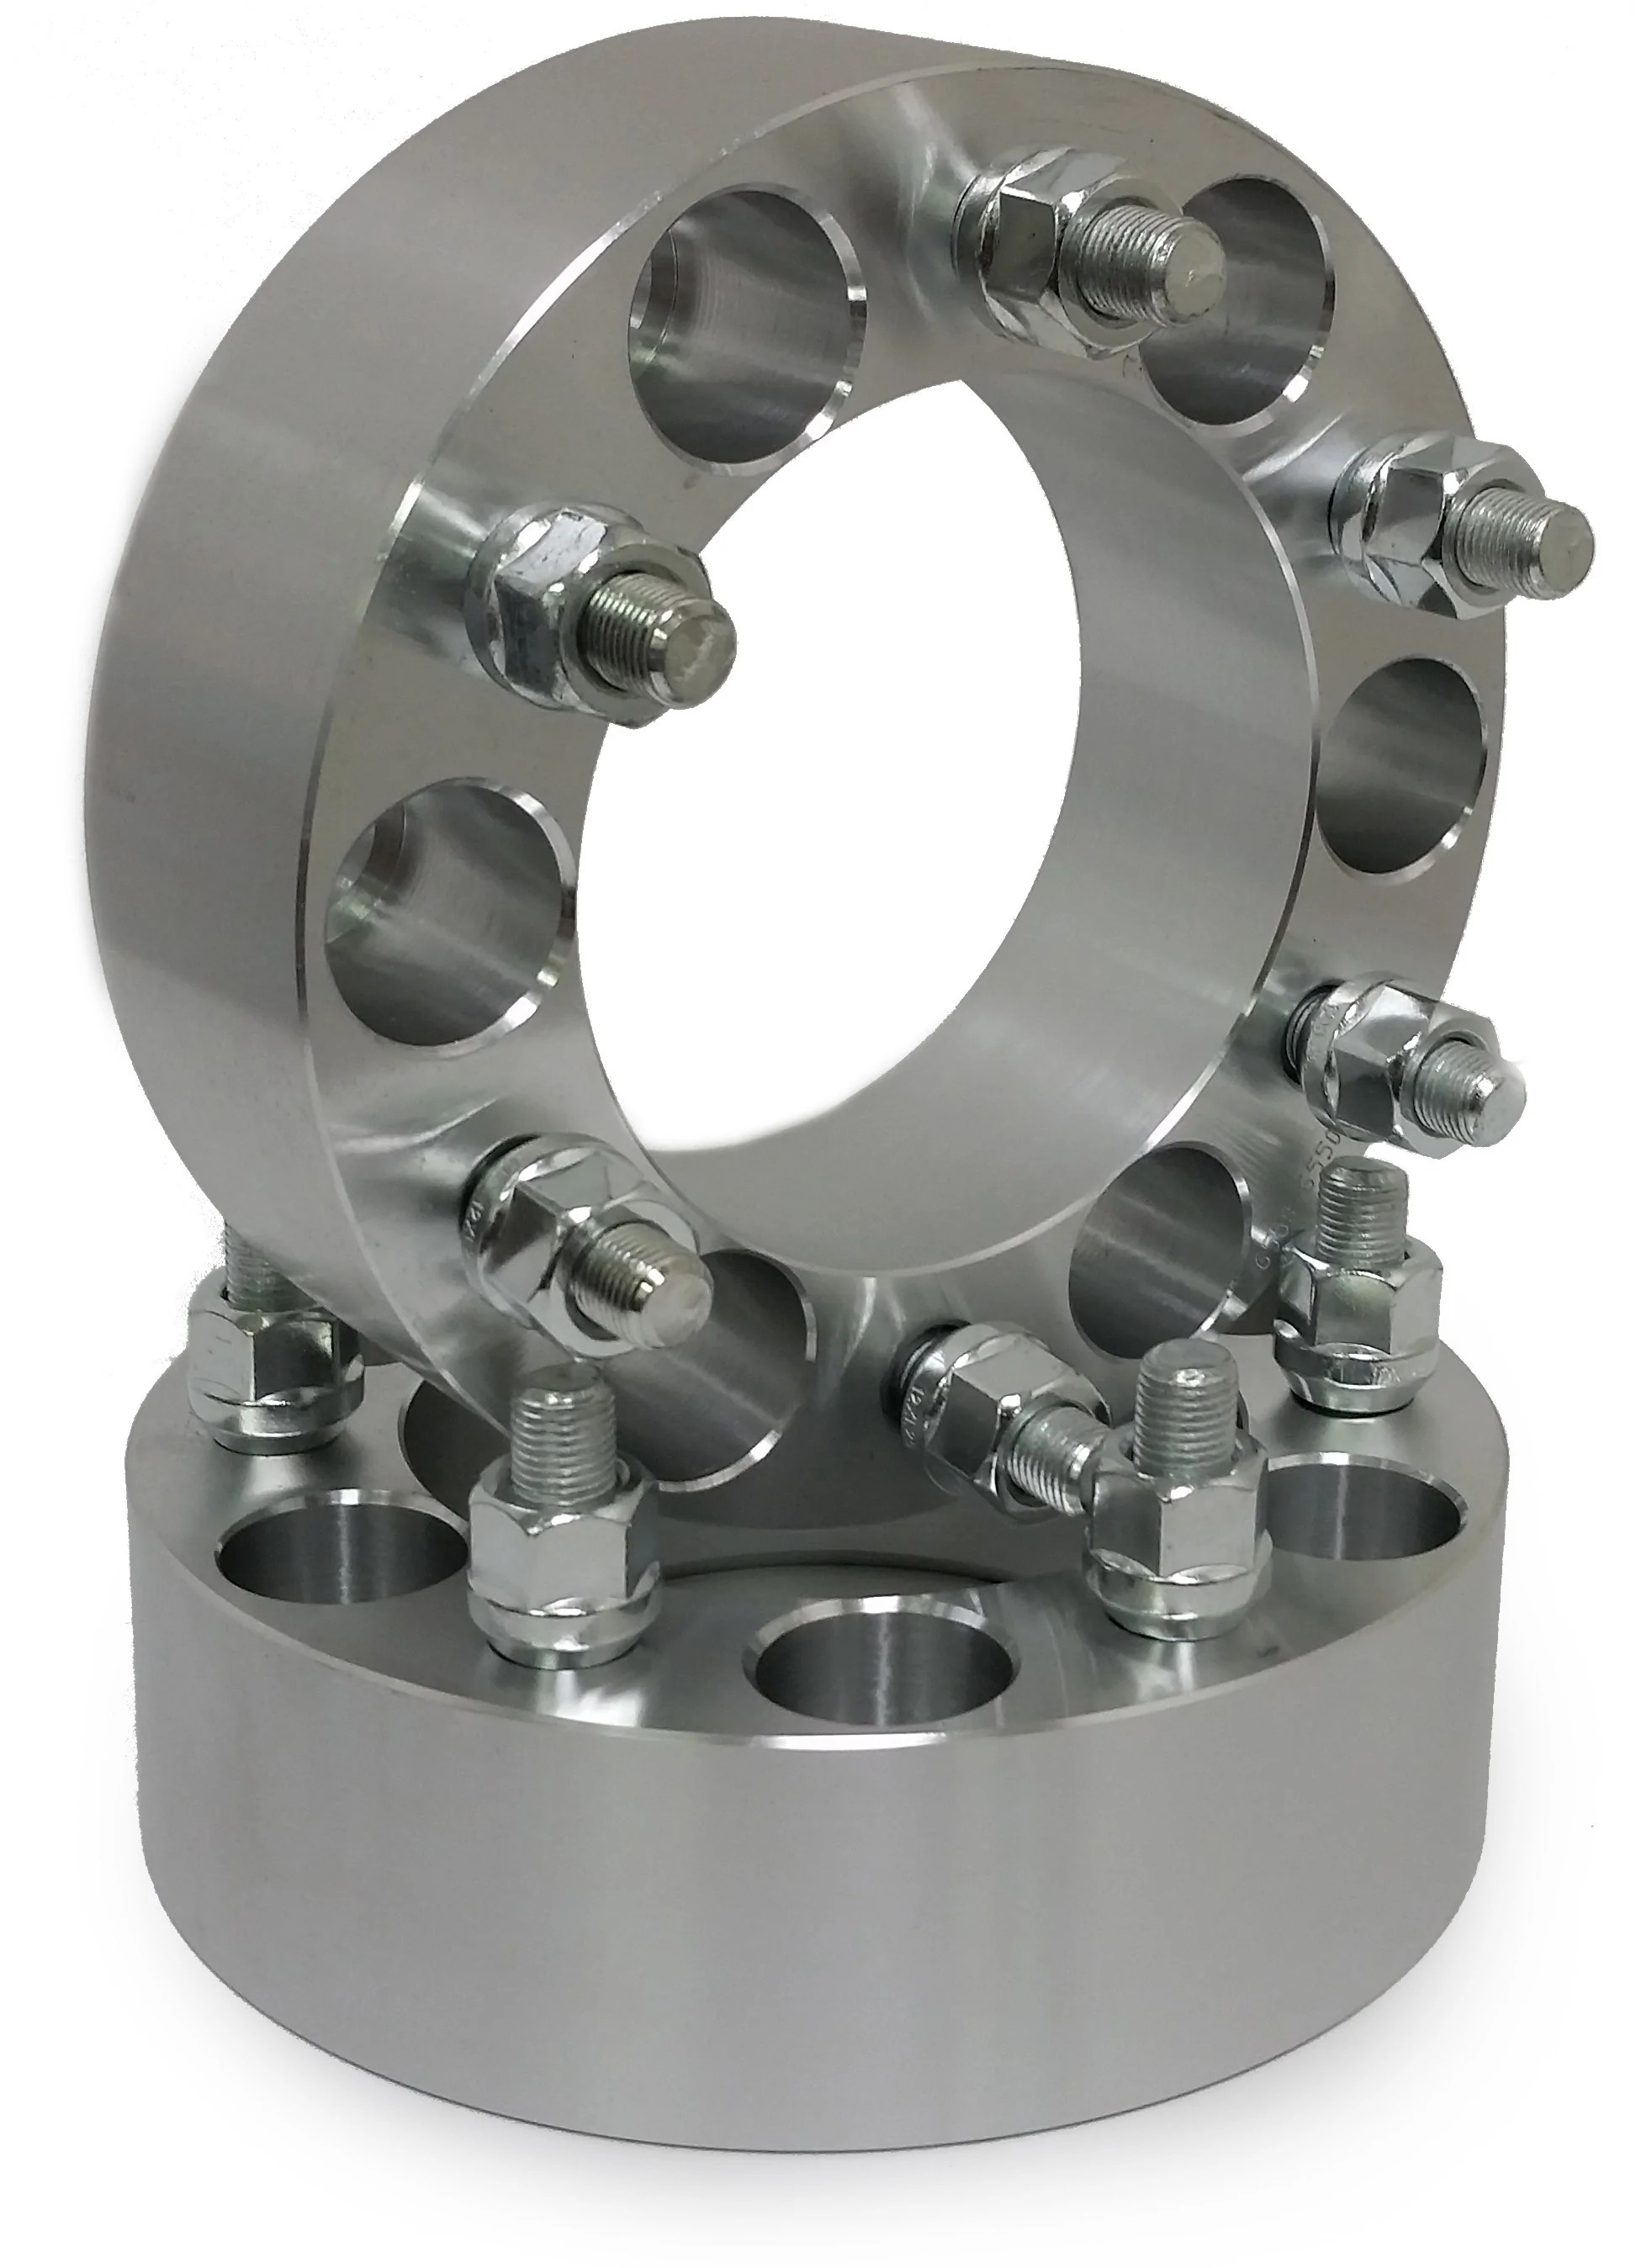 4 8x200 wheel spacers for 2005 newer ford f 350 super duty dually trucks 14x1 5 studs [ 1945 x 2697 Pixel ]